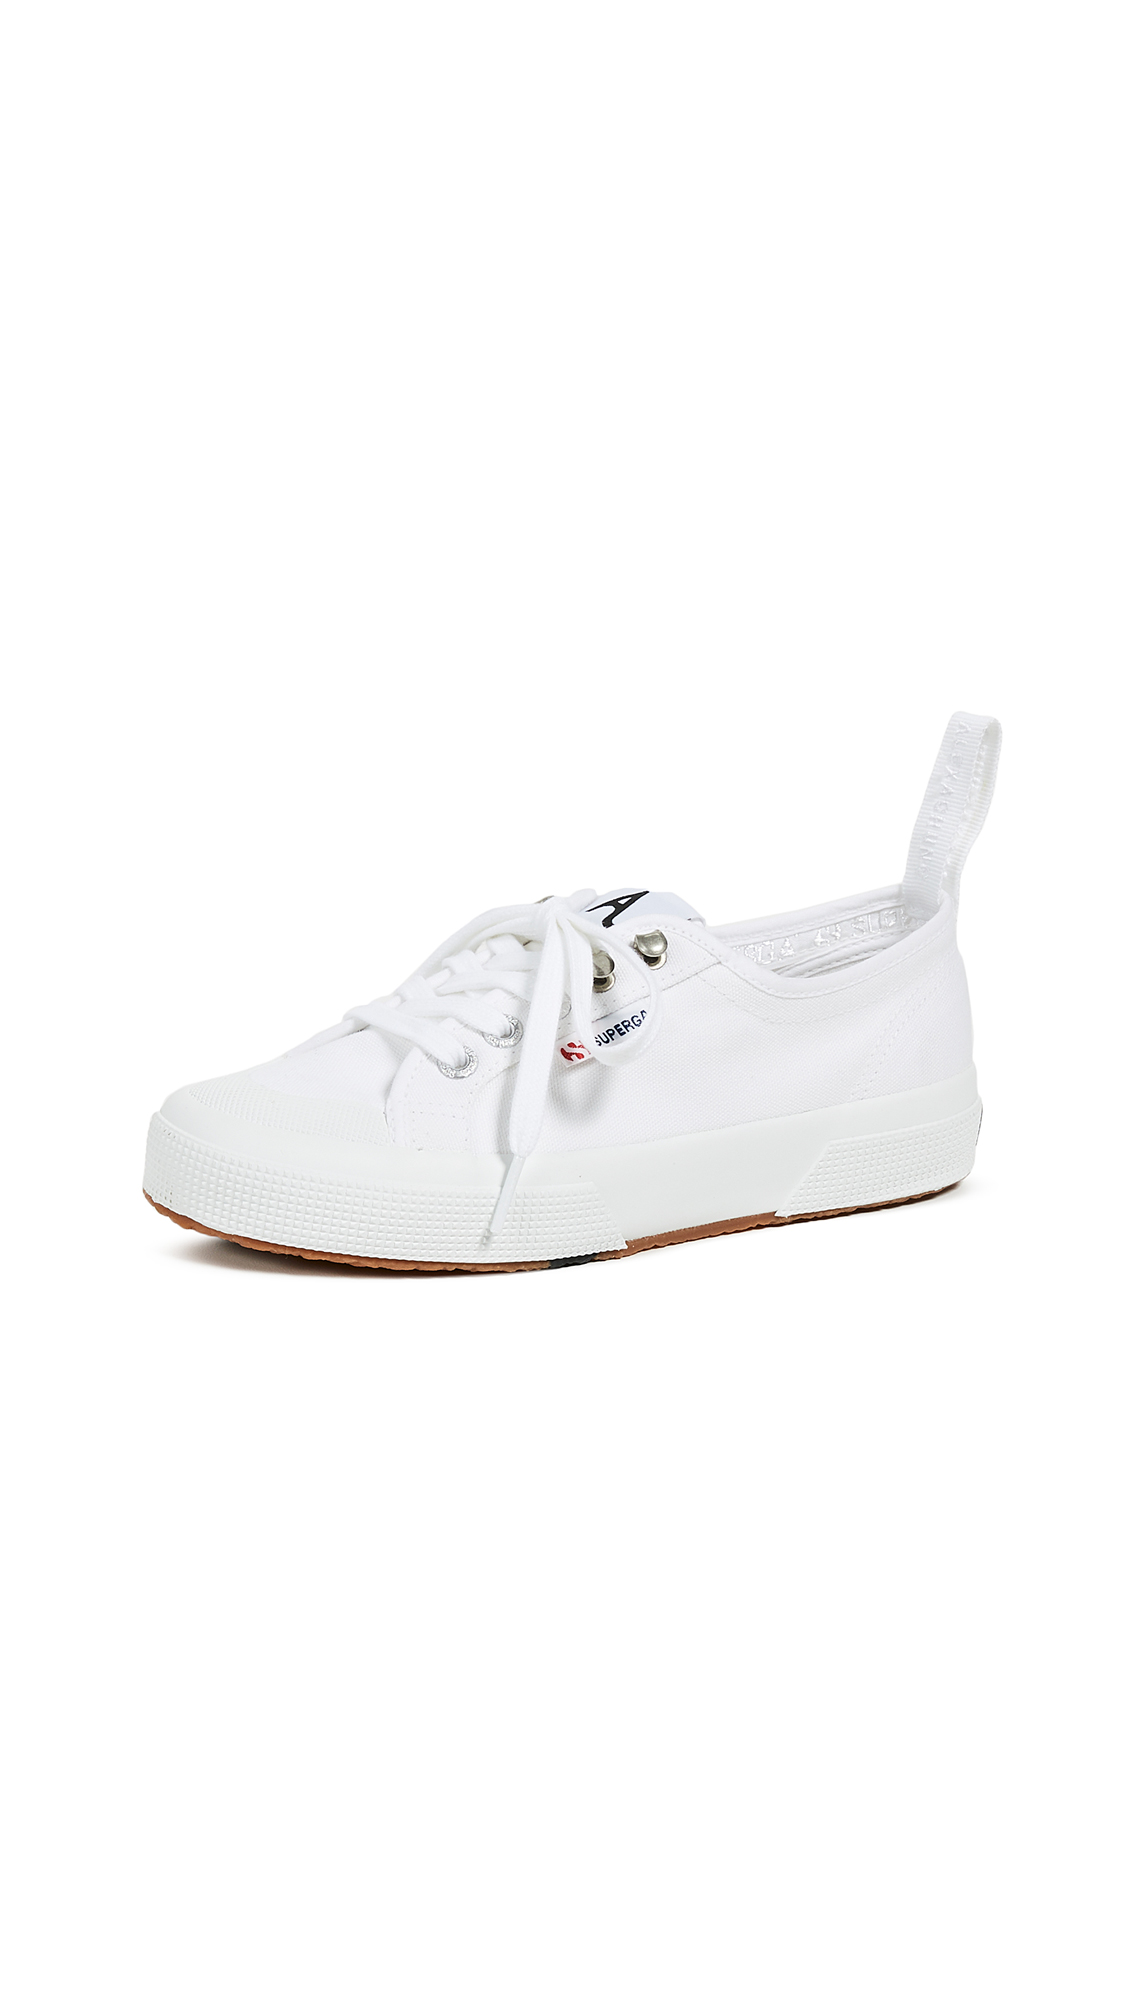 Superga x Alexa Chung 2294 Cothook Lace Up Sneakers - White